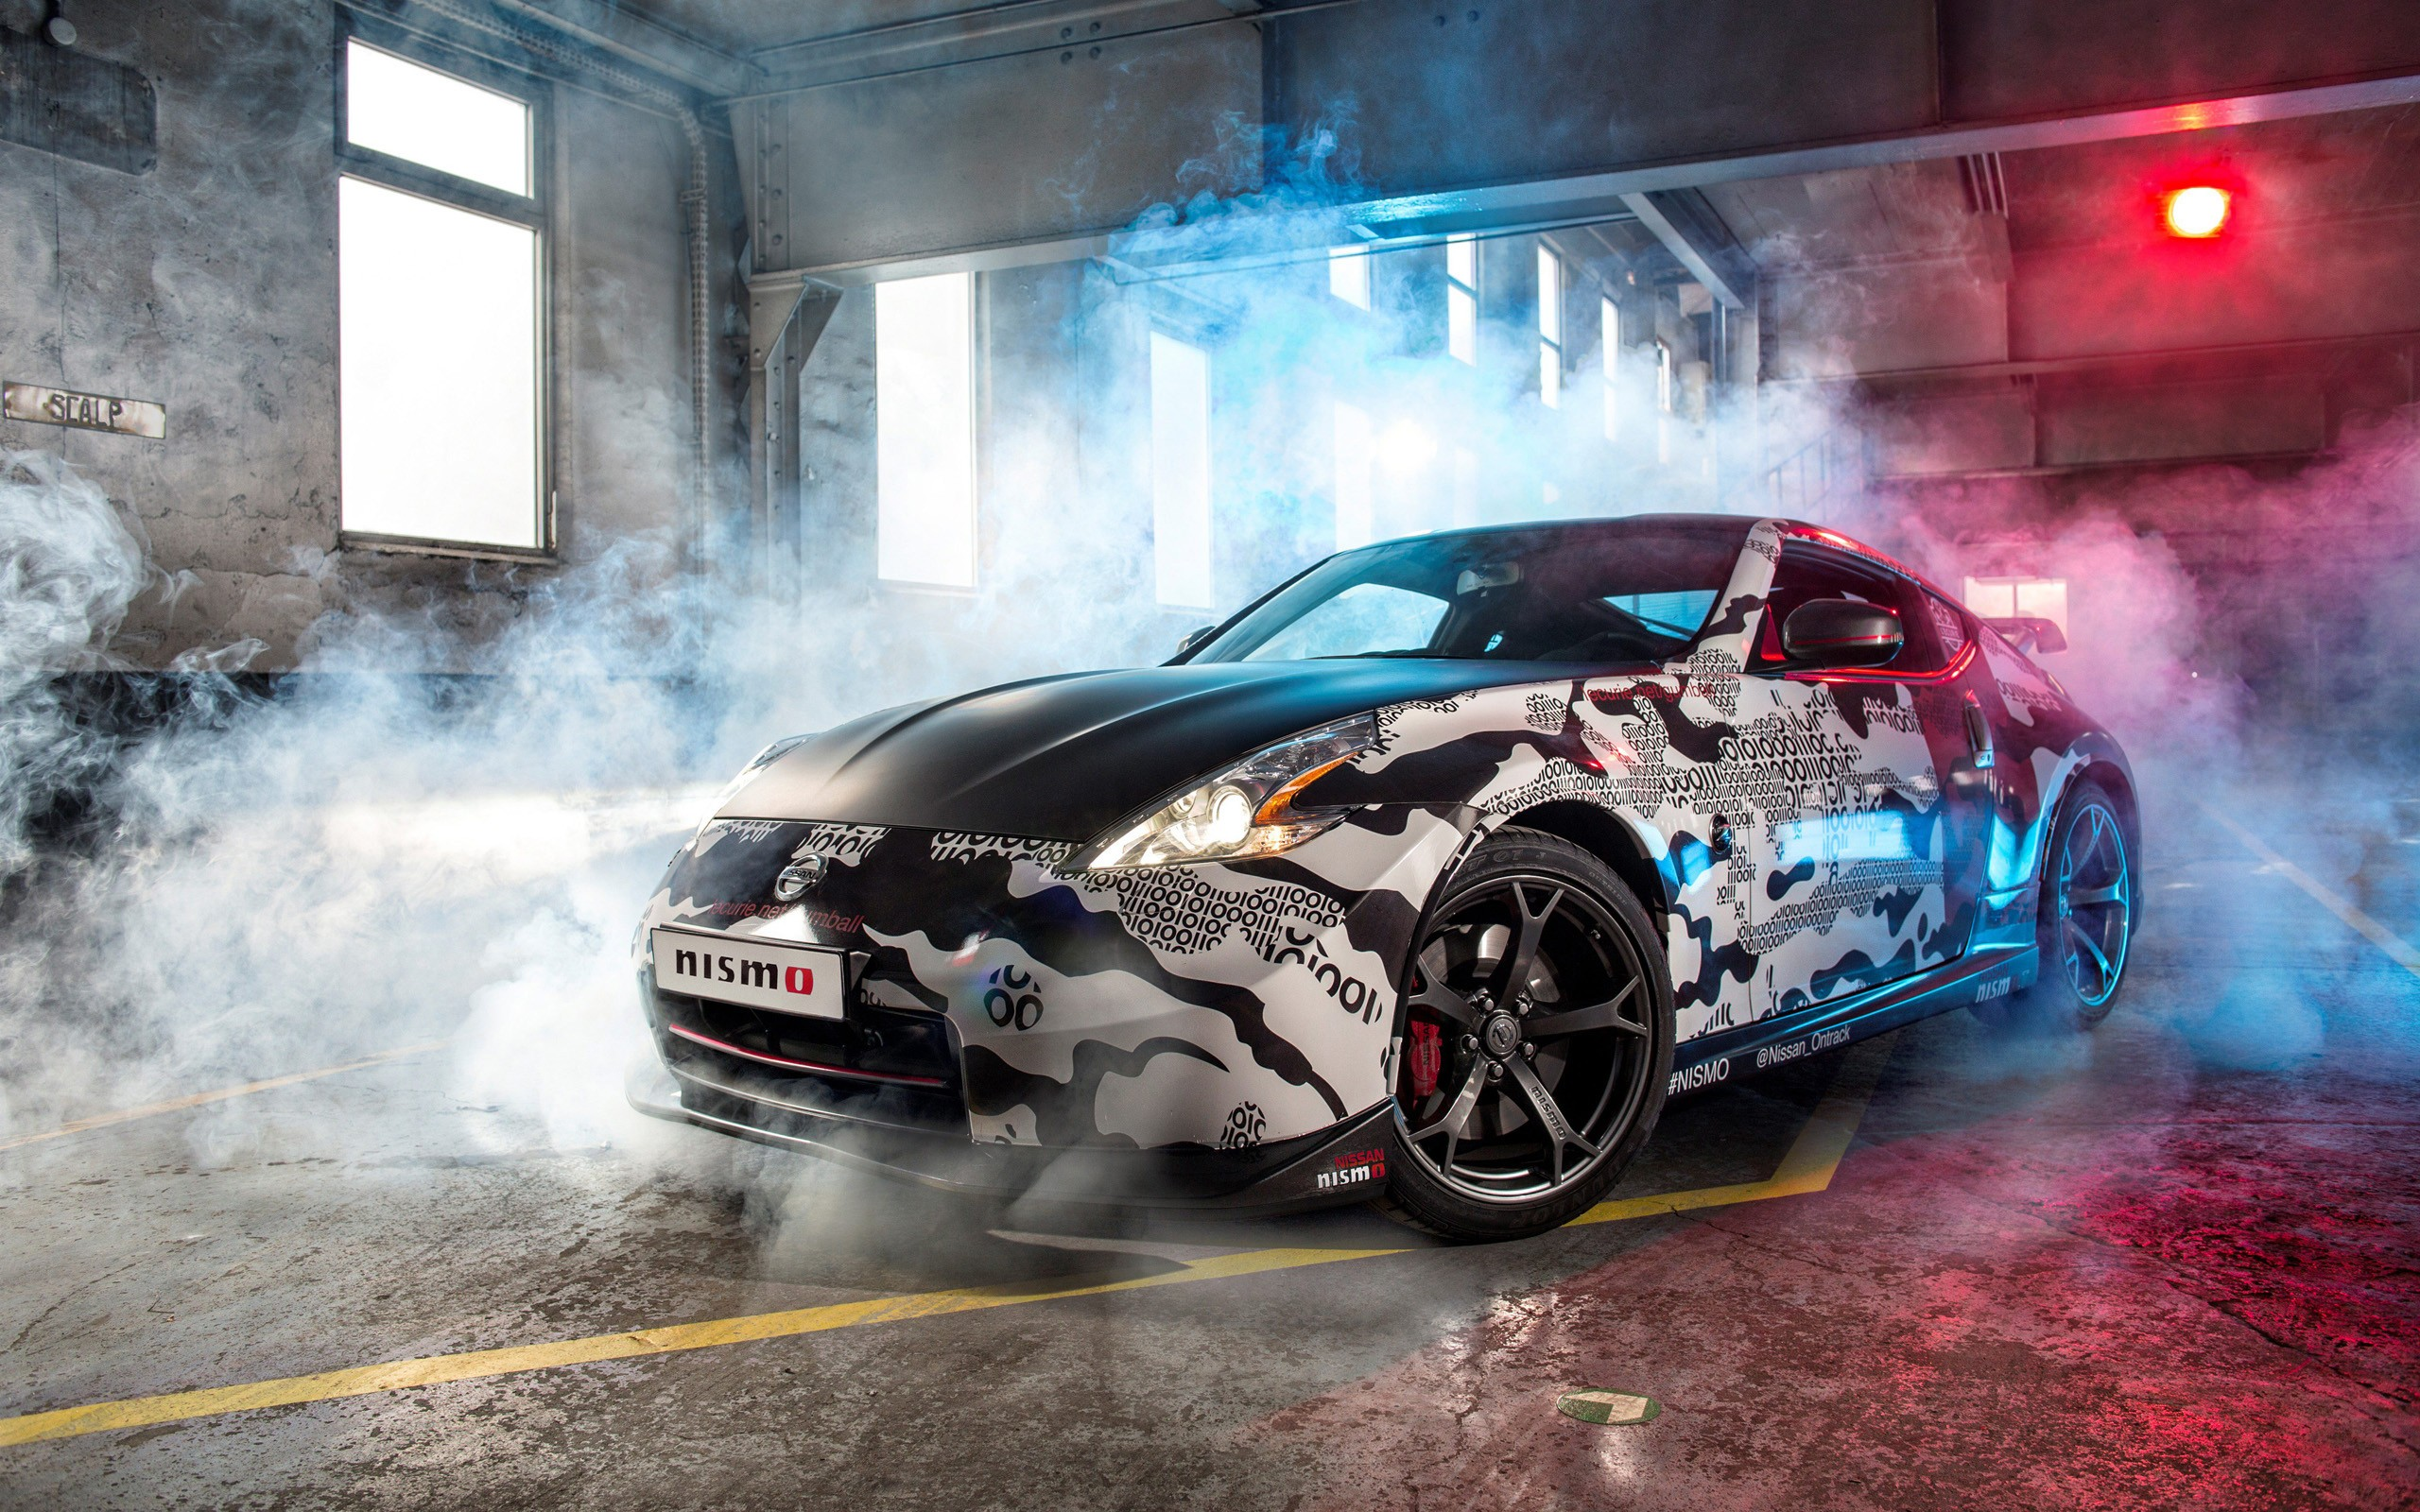 2013 Nissan 370Z NISMO Gumball 3000 Rally Wallpaper | HD ...